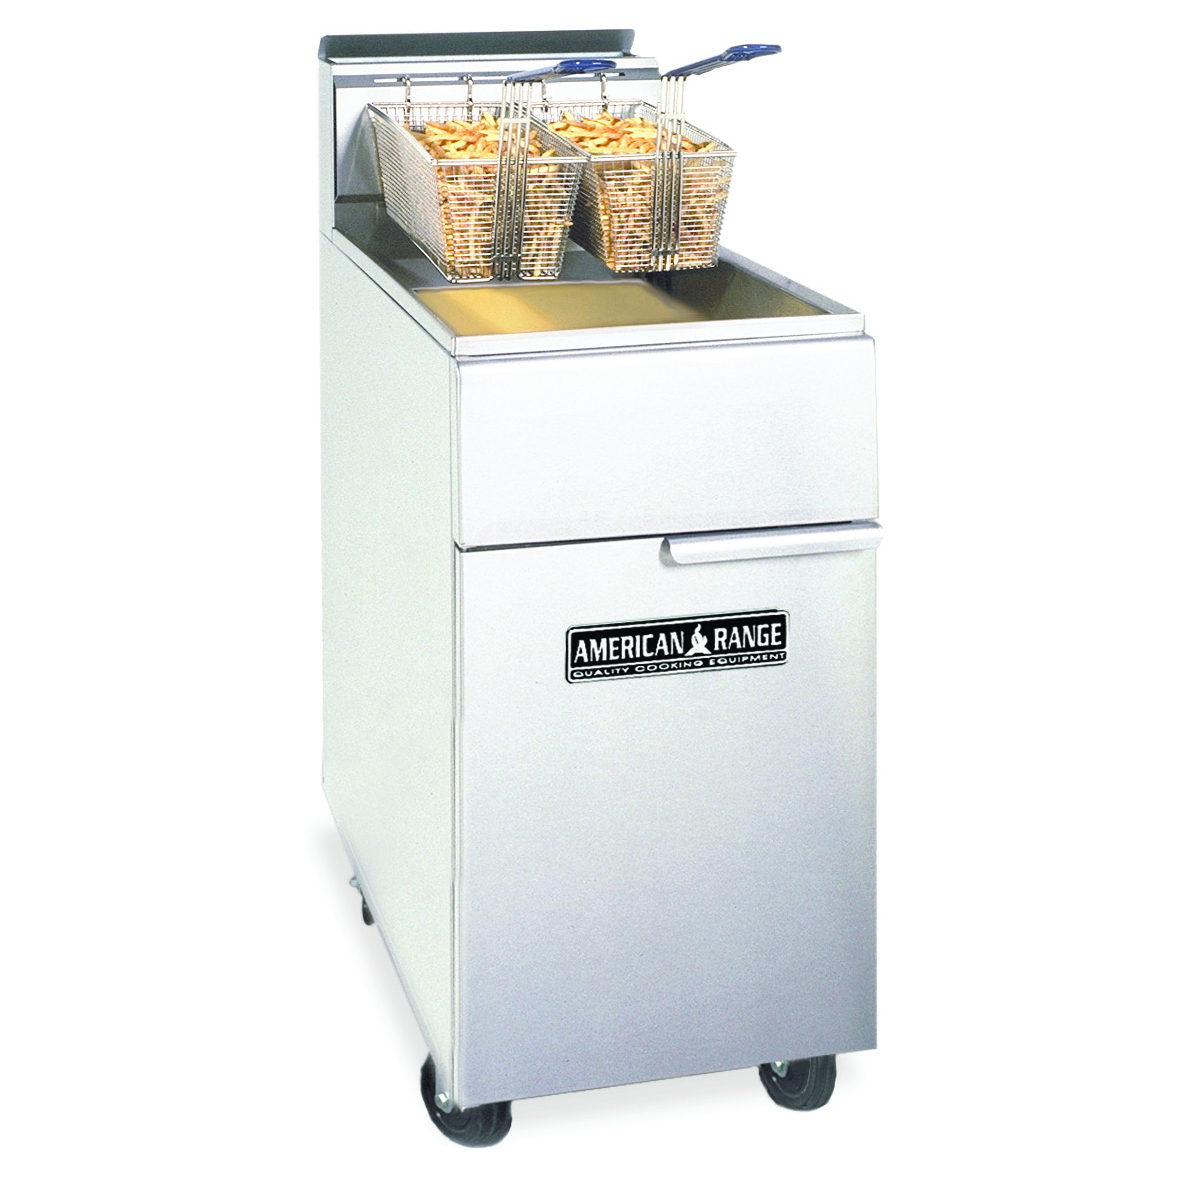 American Range AF50-HE fryer, gas, floor model, full pot